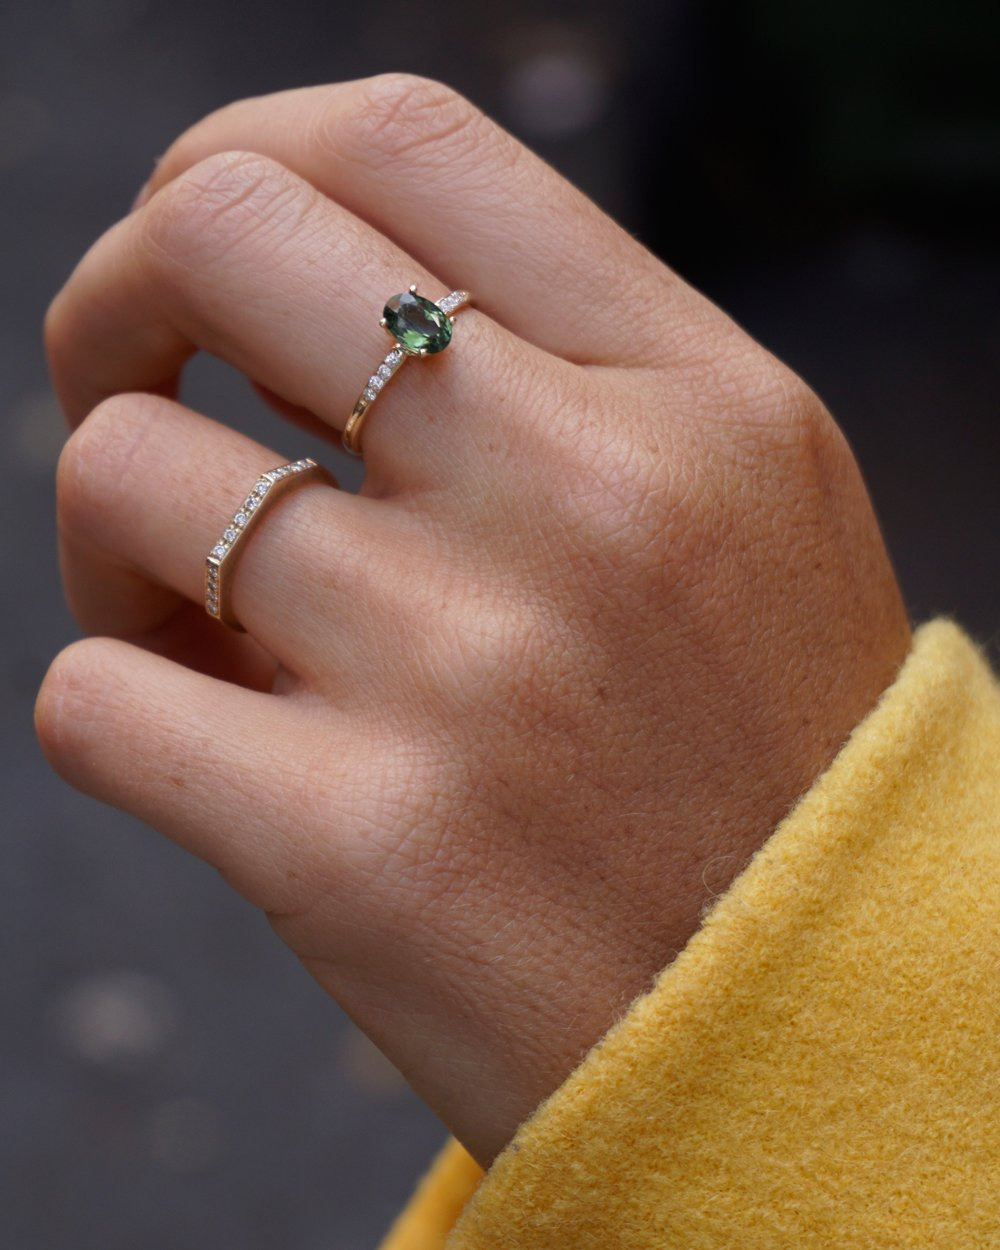 Ellipse Ring in Yellow Gold with Green Tourmaline and Lab Grown Diamonds